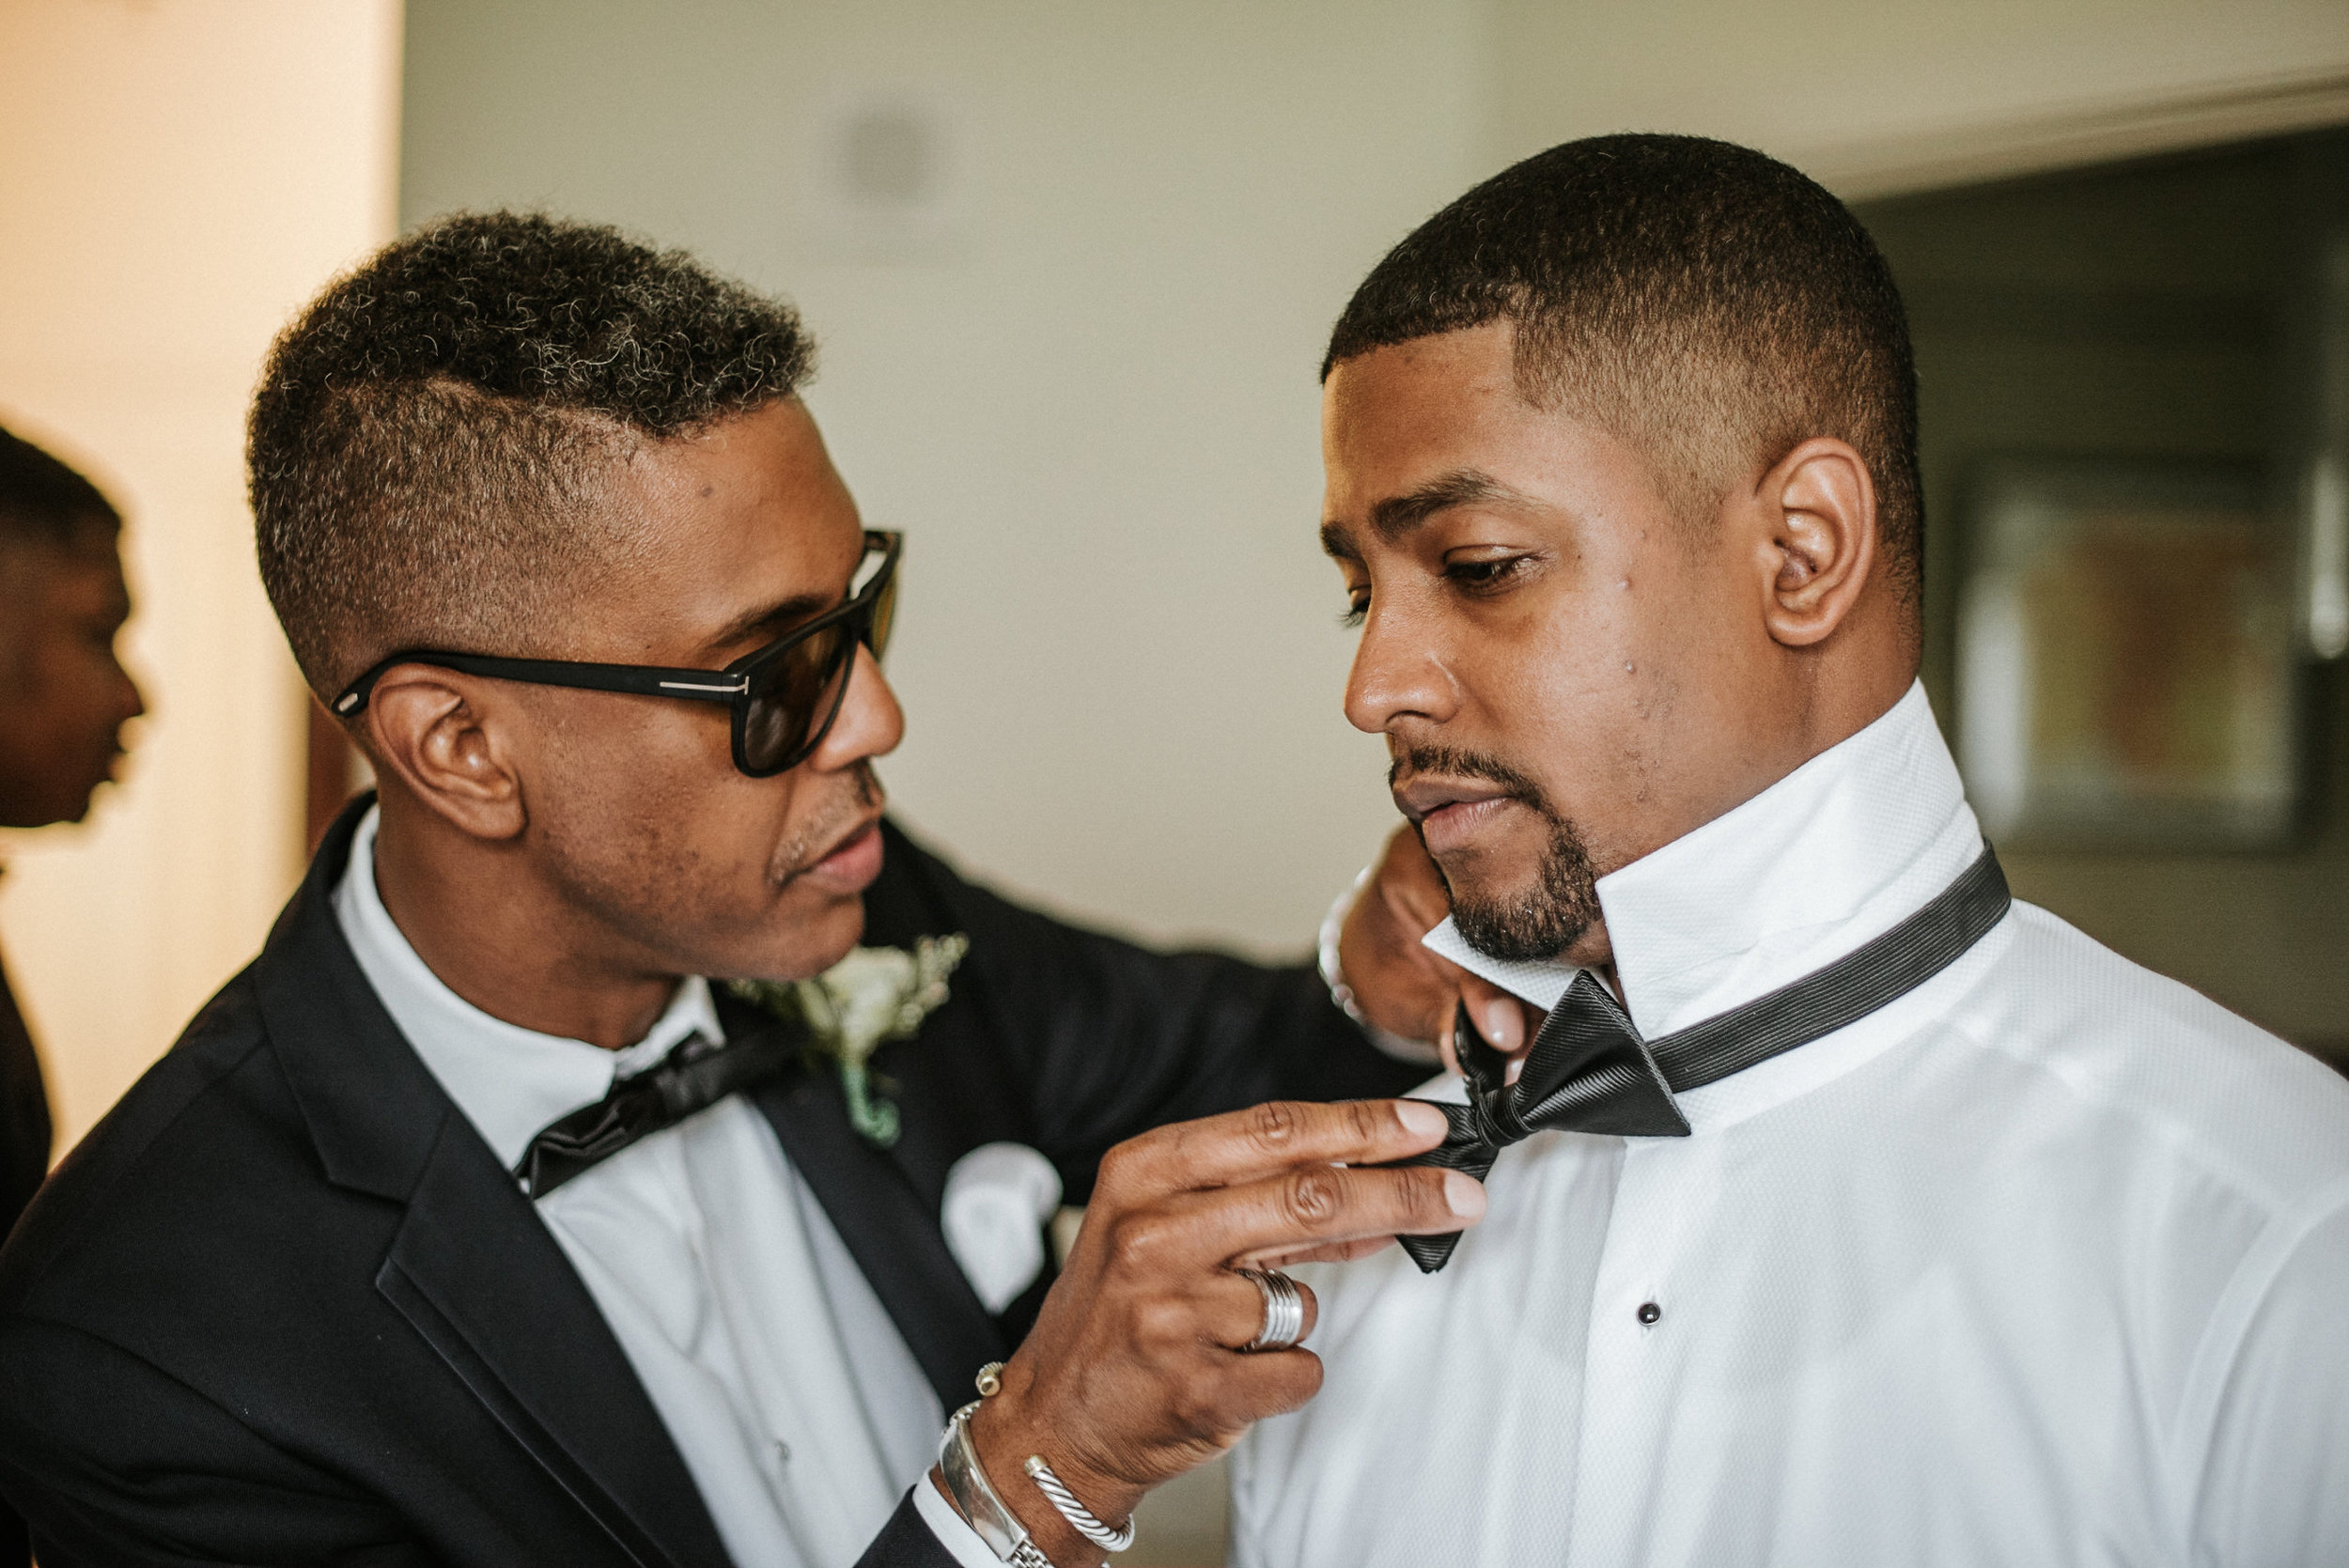 Groomsmen helping groom with bow tie